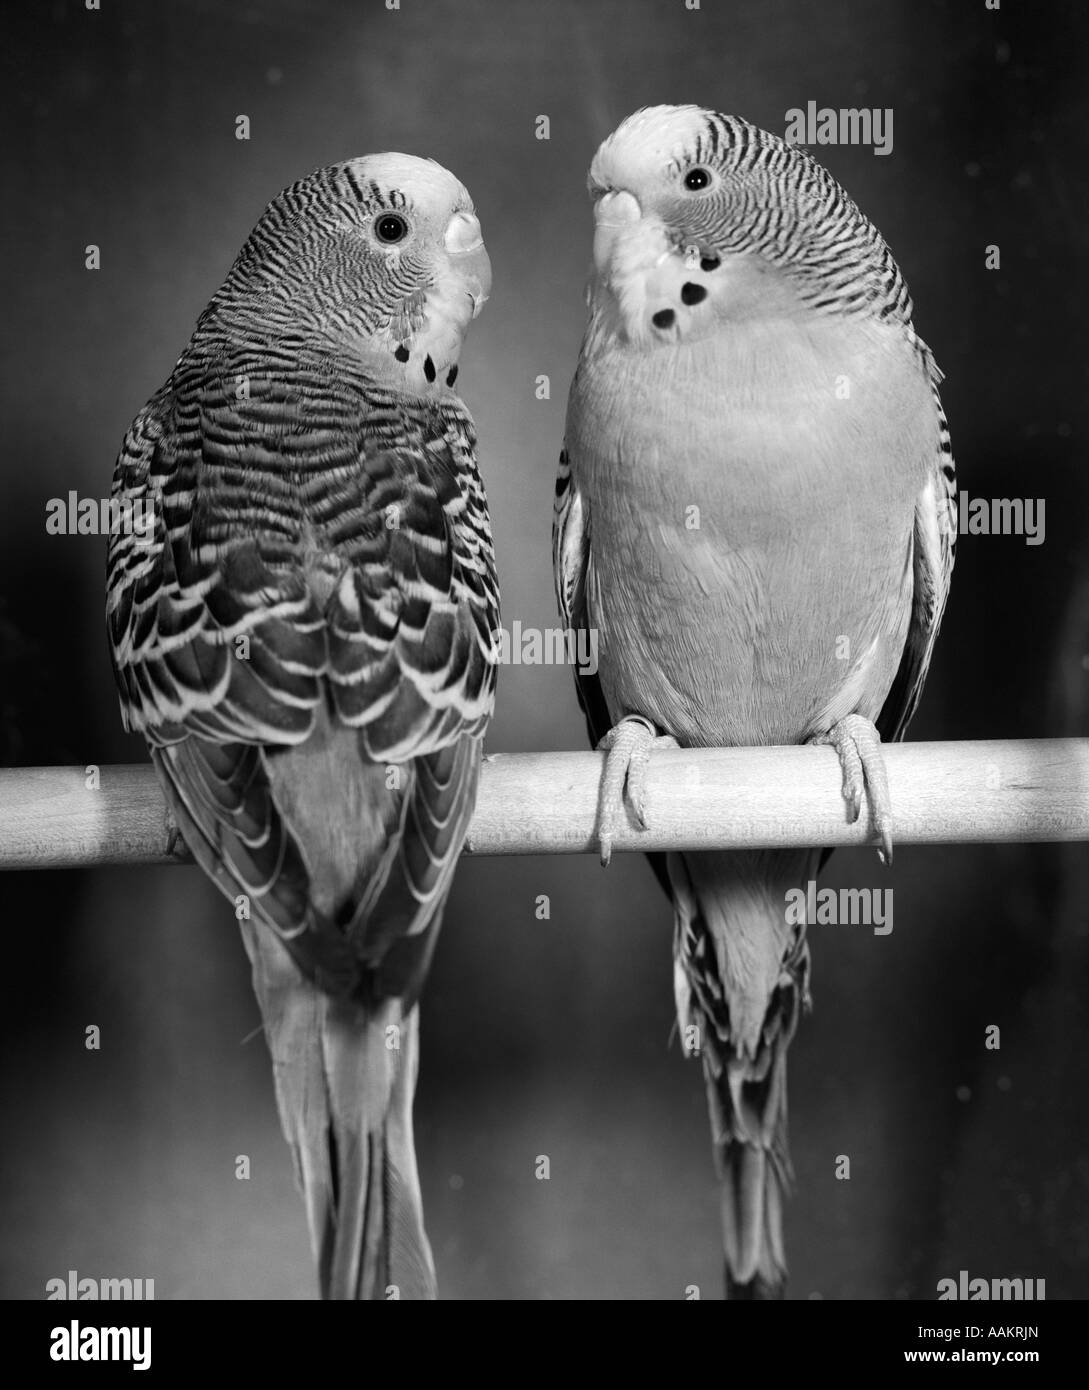 1960s PAIR OF PARAKEETS PERCHED IN OPPOSITE DIRECTIONS ON WOODEN DOWEL LOOKING AT EACH OTHER - Stock Image